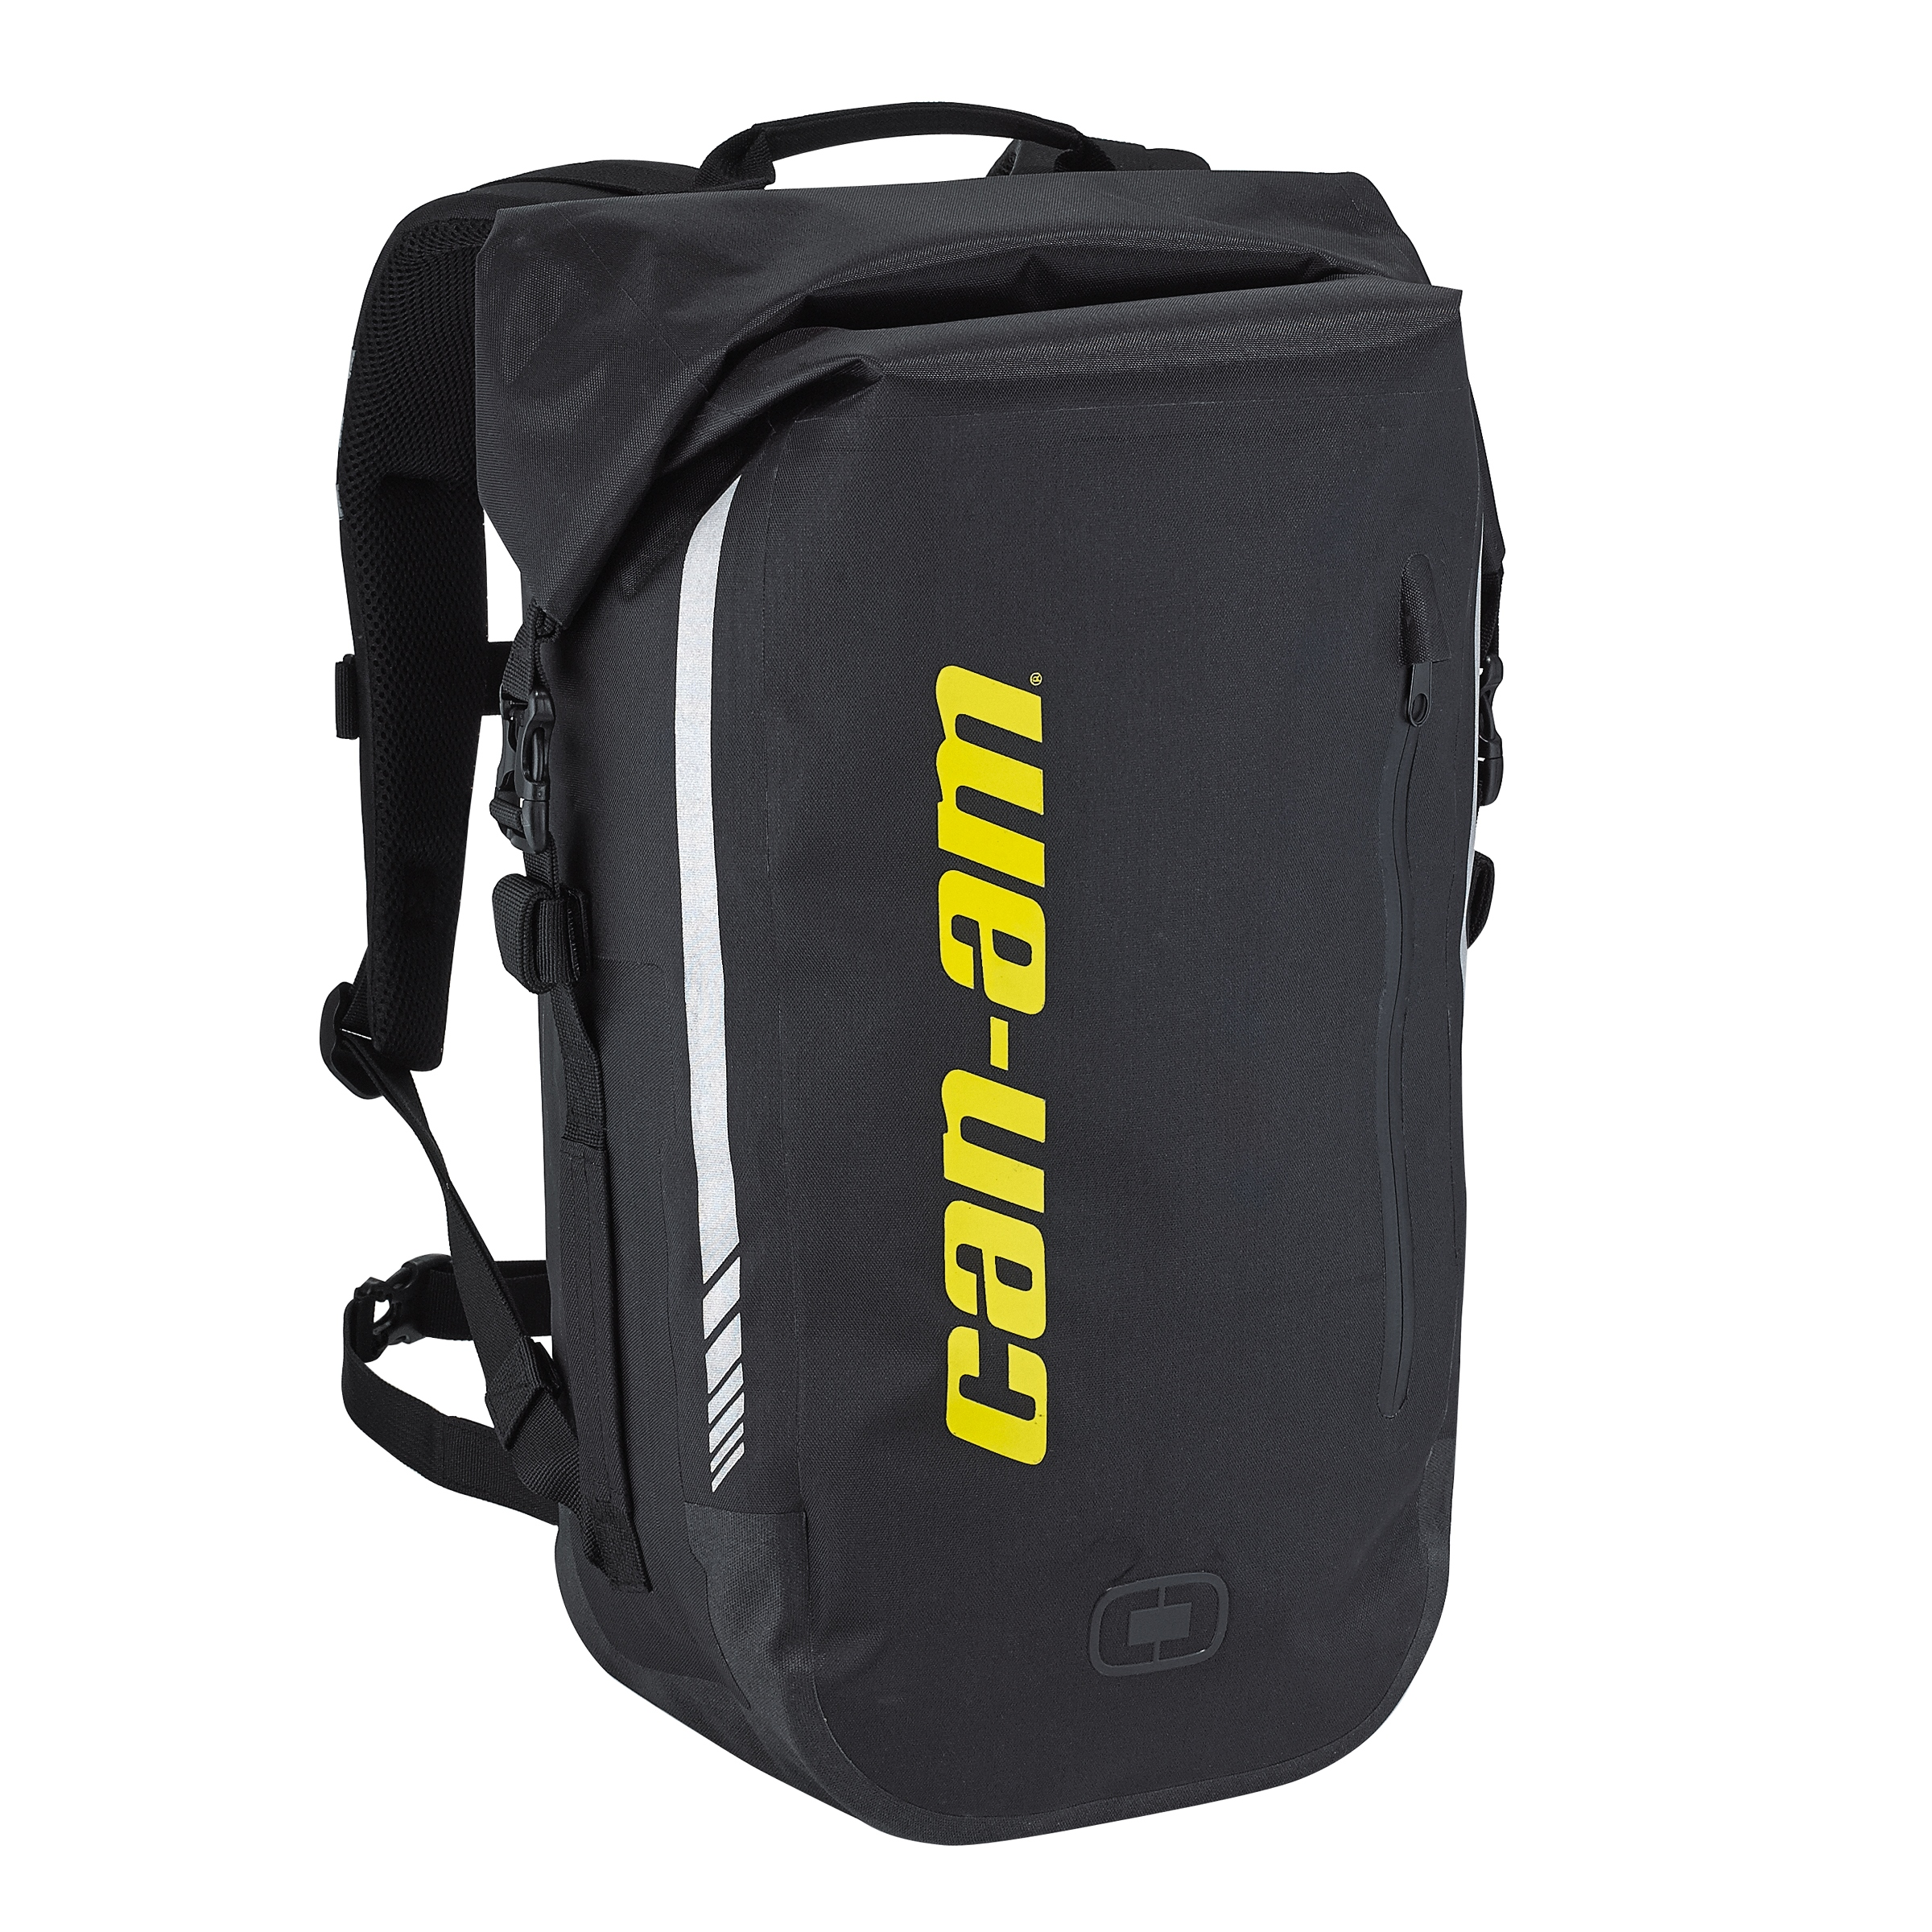 01d8d956823f6 Sac à dos imperméable Can-Am Carrier par OGIO CAN-AM 469544 : RS ...